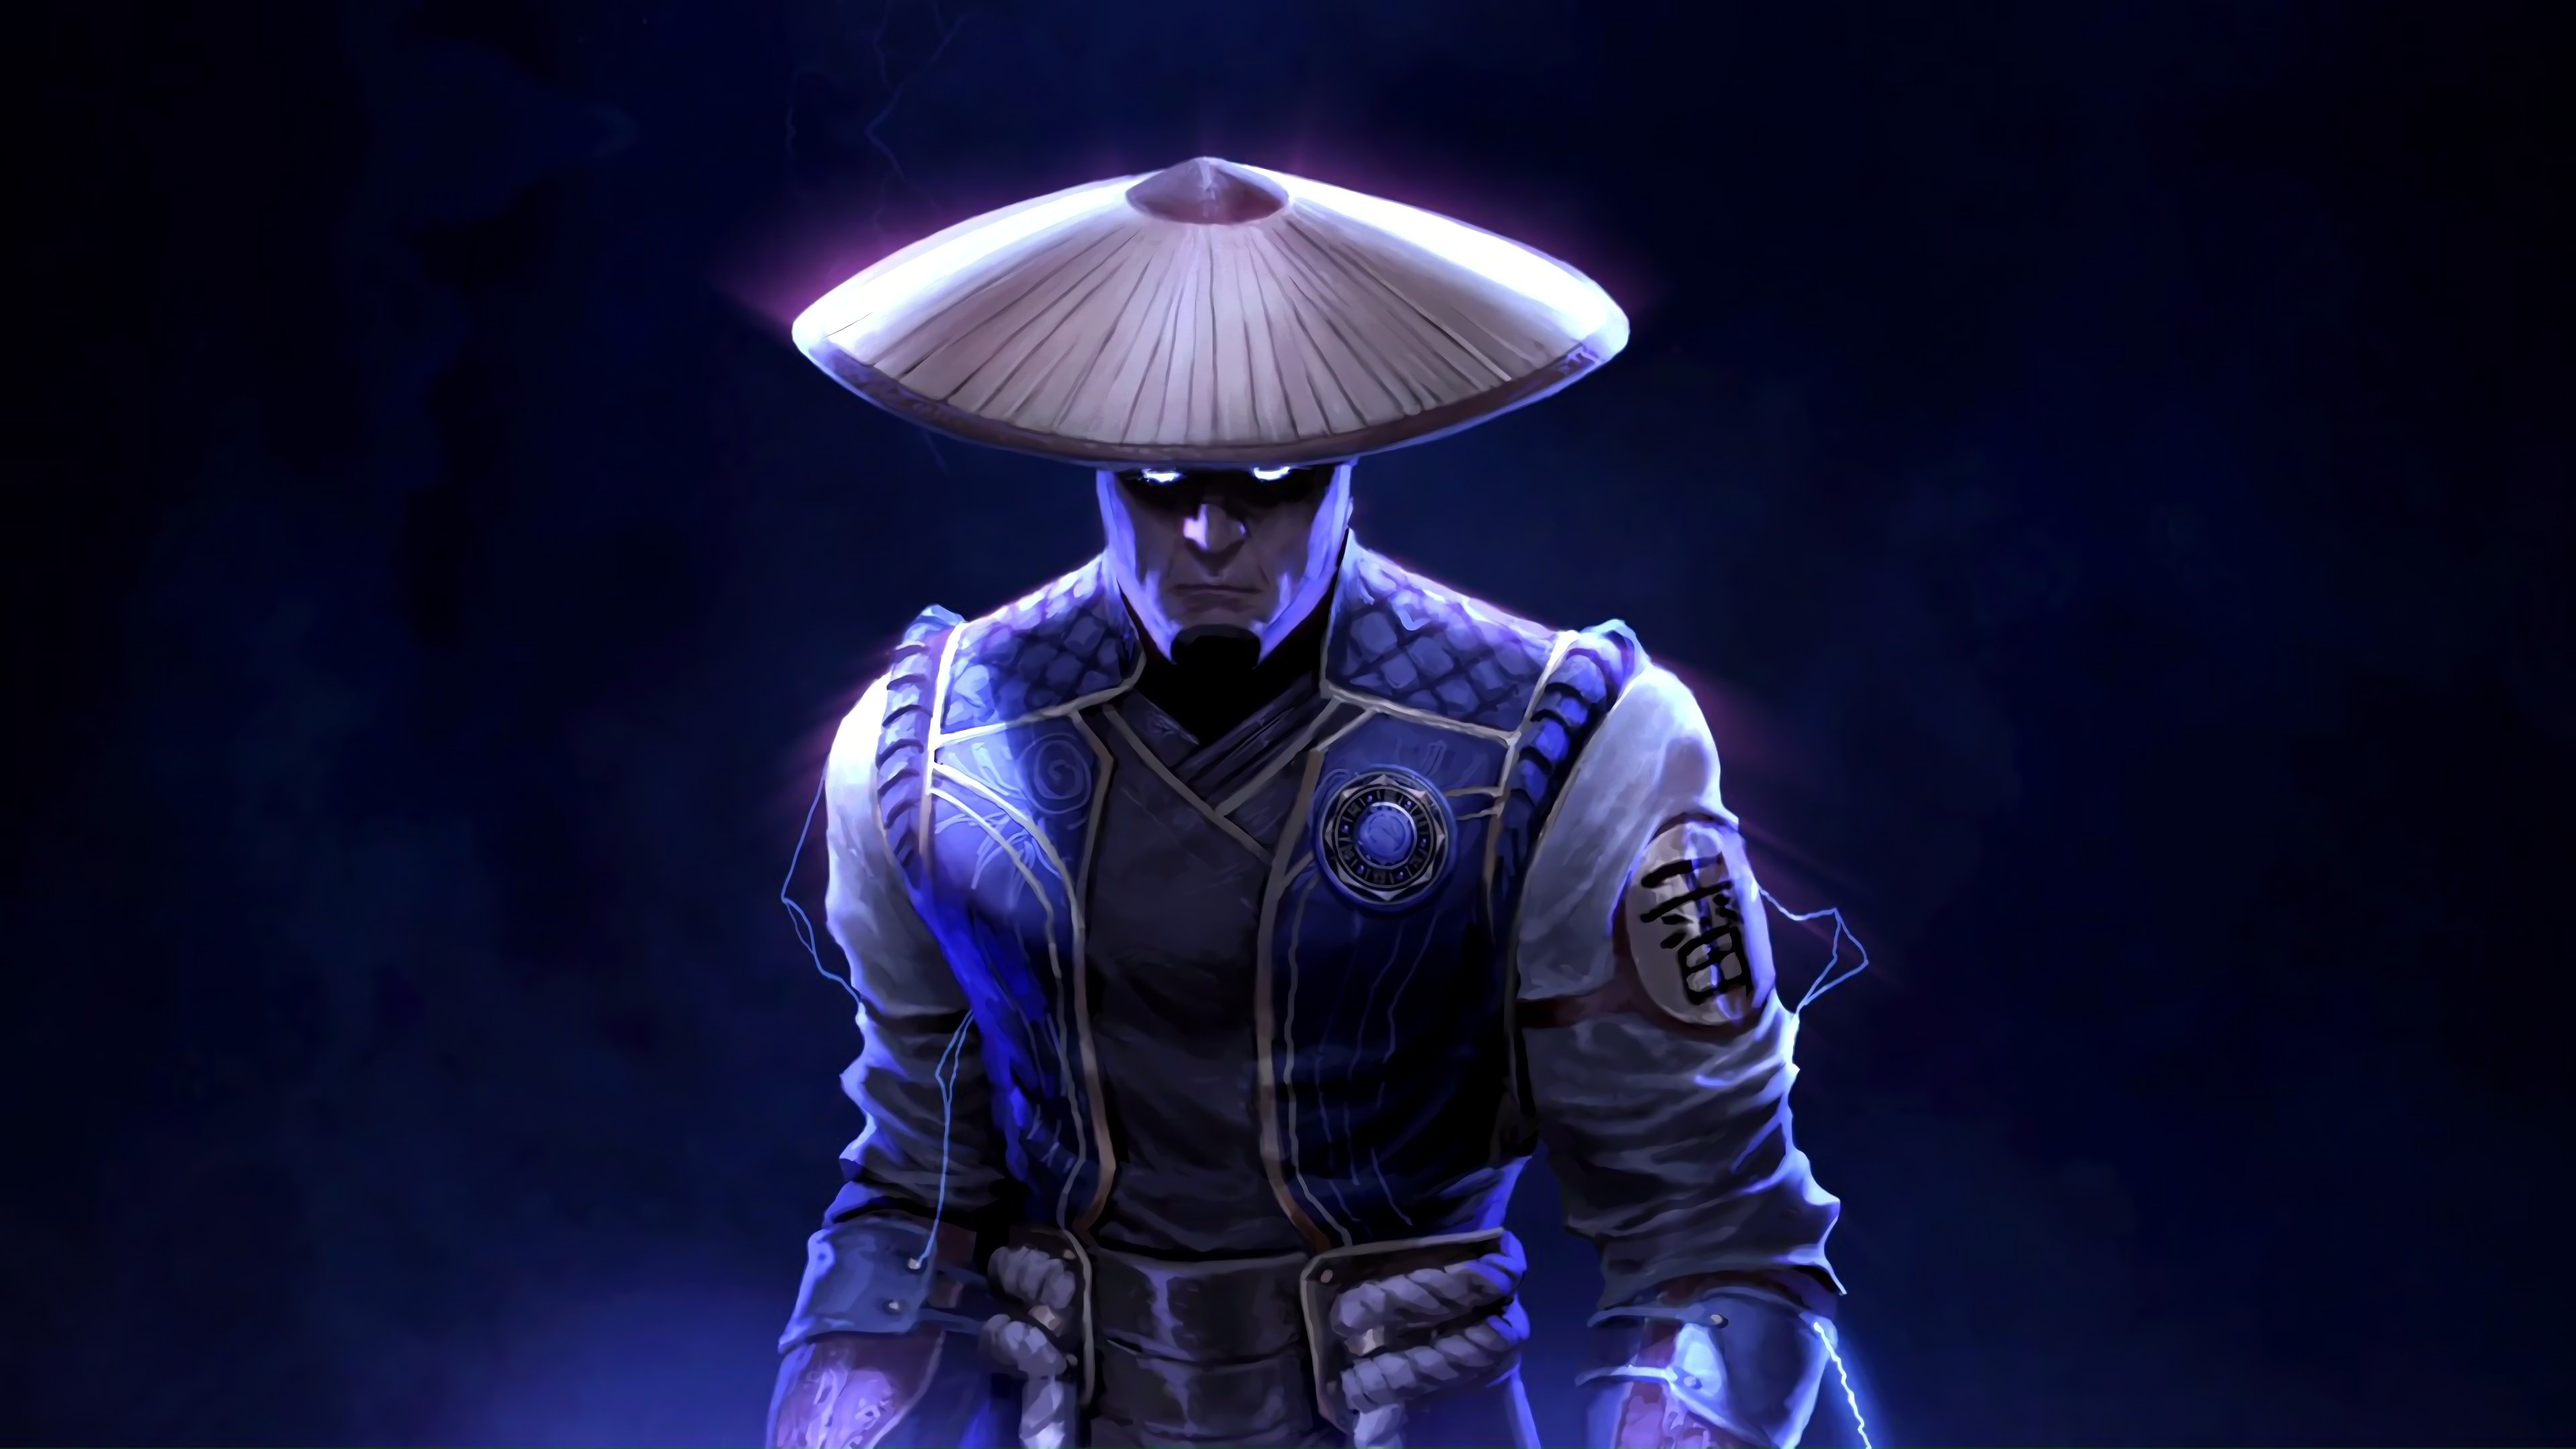 Free Download Raiden Of Mortal Kombat Wallpaper 4k Ultra Hd Id3029 3840x2160 For Your Desktop Mobile Tablet Explore 57 Mortal Kombat Hd Wallpaper Mortal Kombat 9 Wallpapers Mortal Kombat